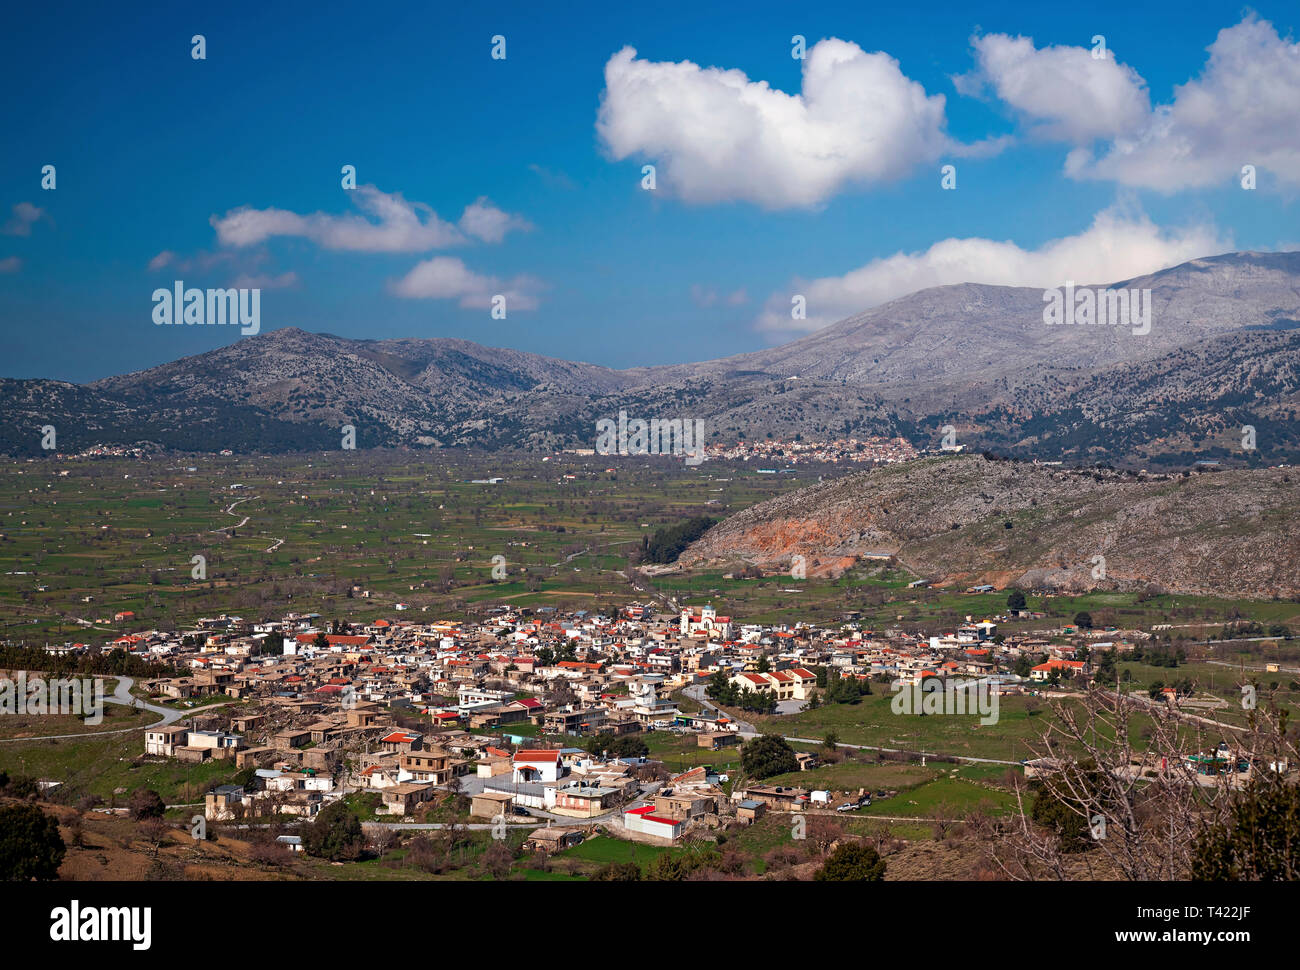 View of Lassithi plateau. You can see Agios Georgios (front) and Tzermiado villages (back). Crete, Greece. - Stock Image